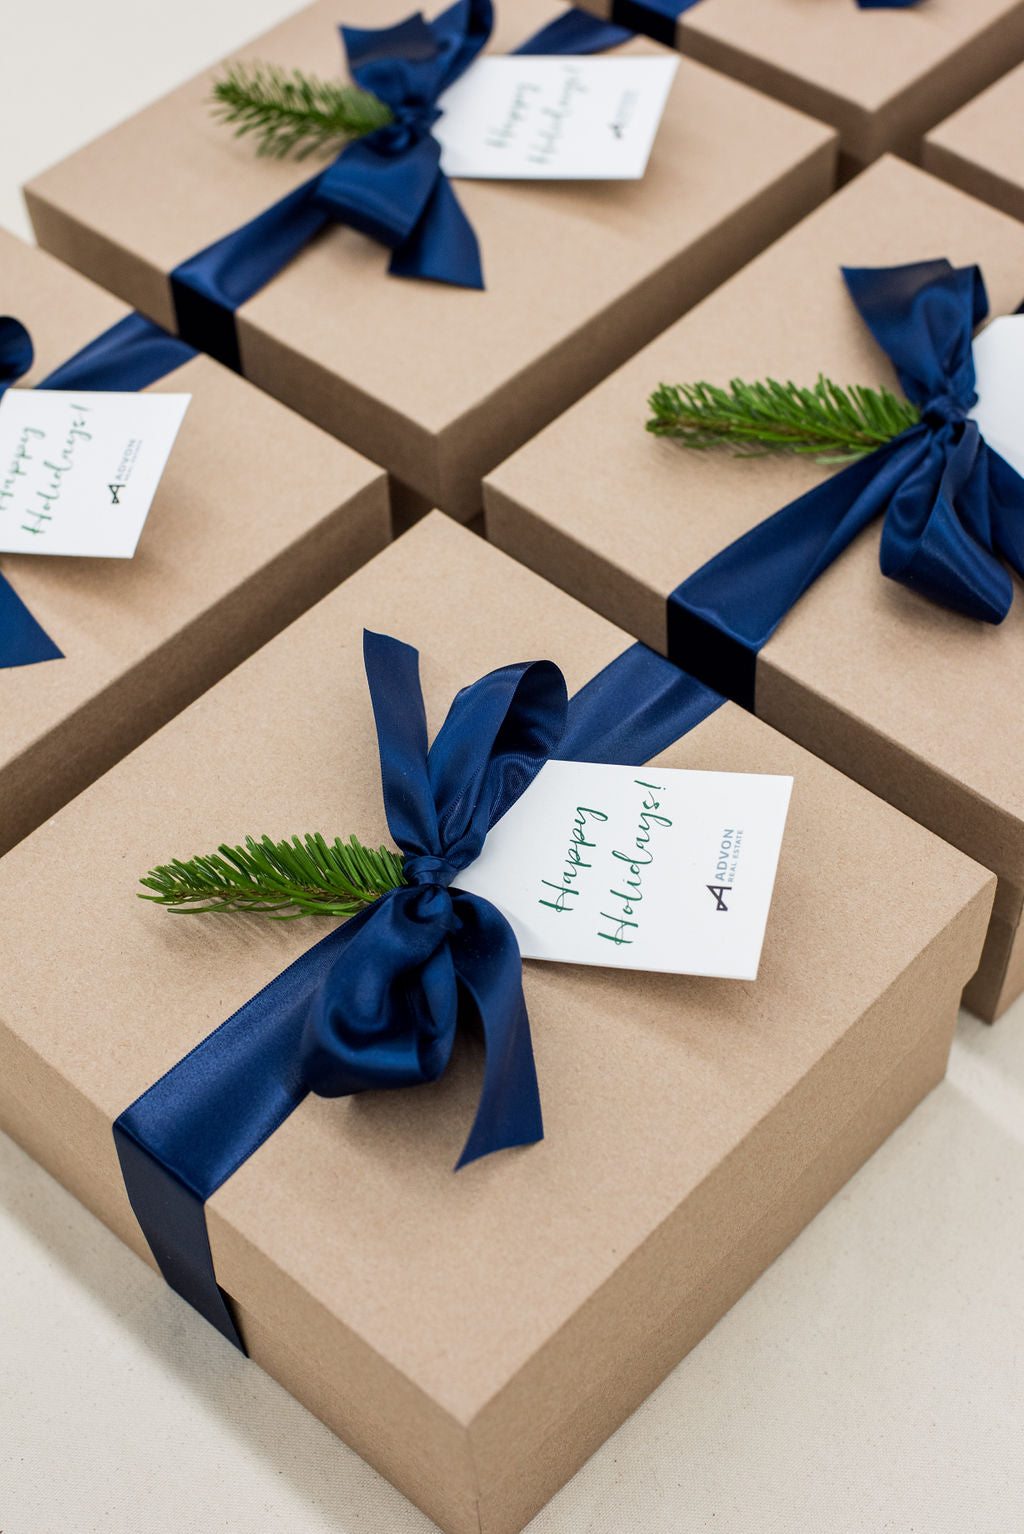 Gender neutral corporate holiday gift boxes